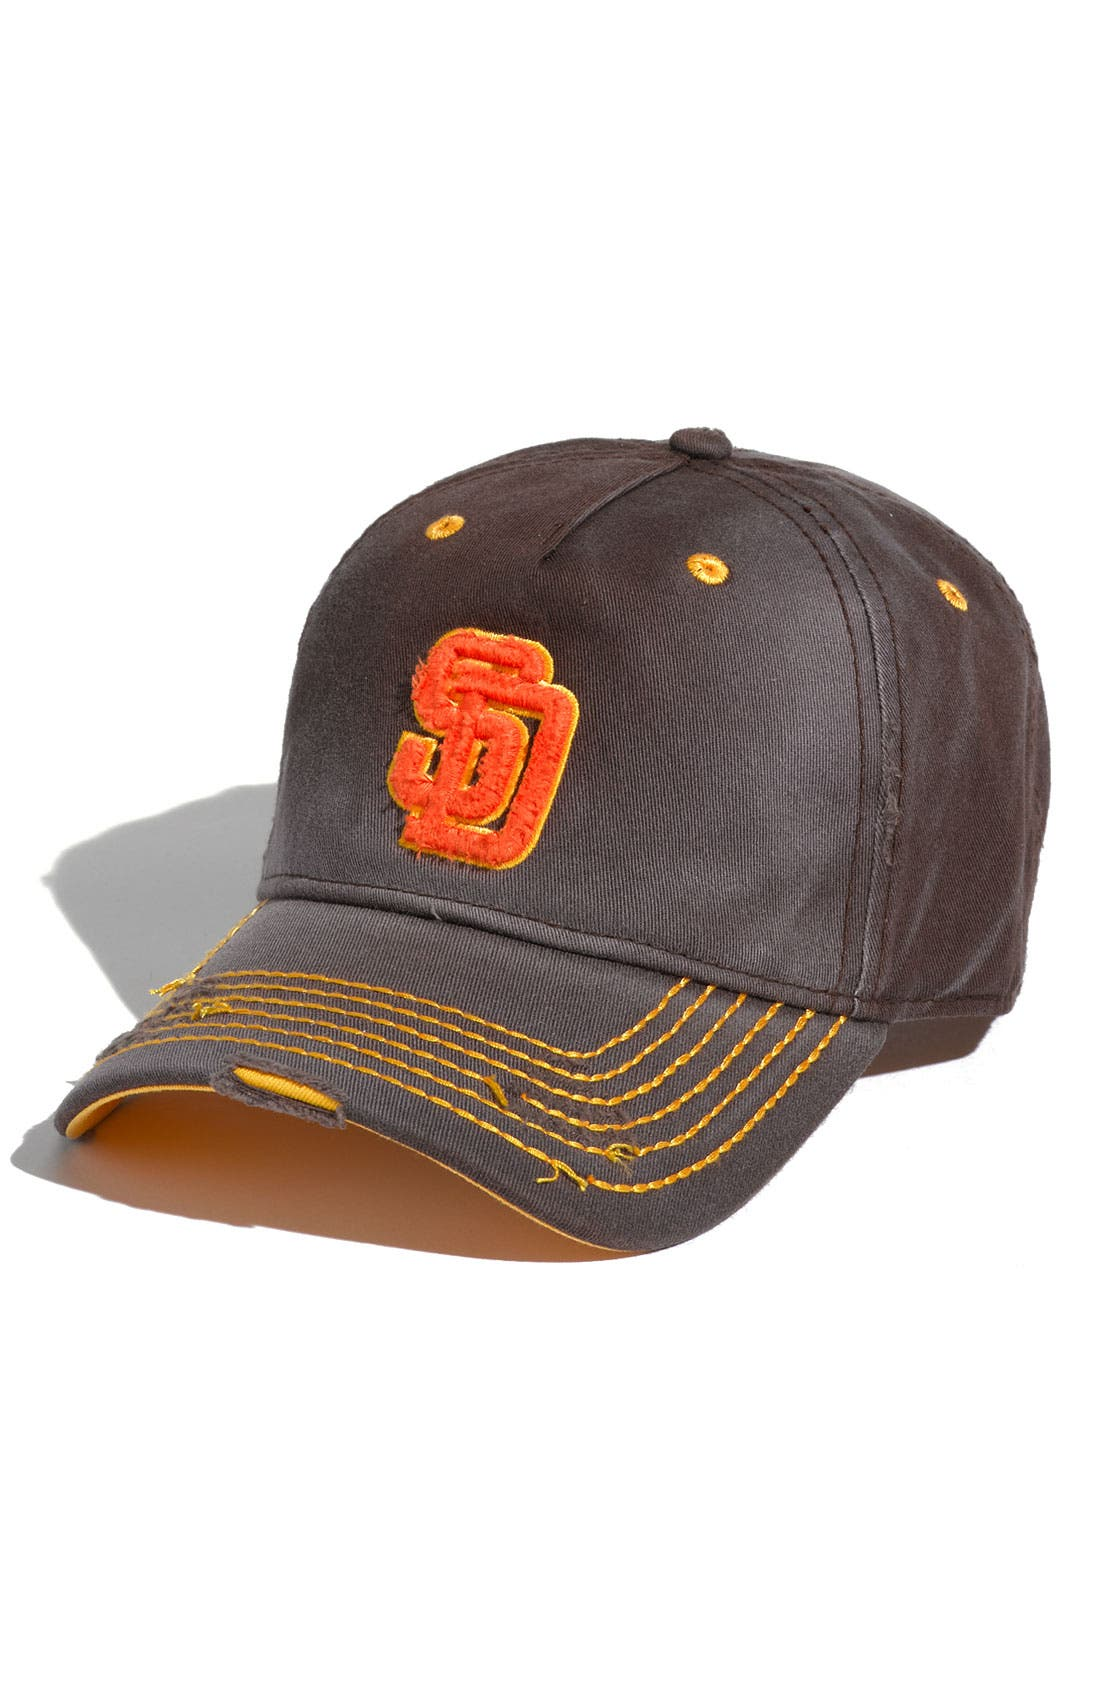 Main Image - American Needle 'San Diego Padres' Distressed Cap